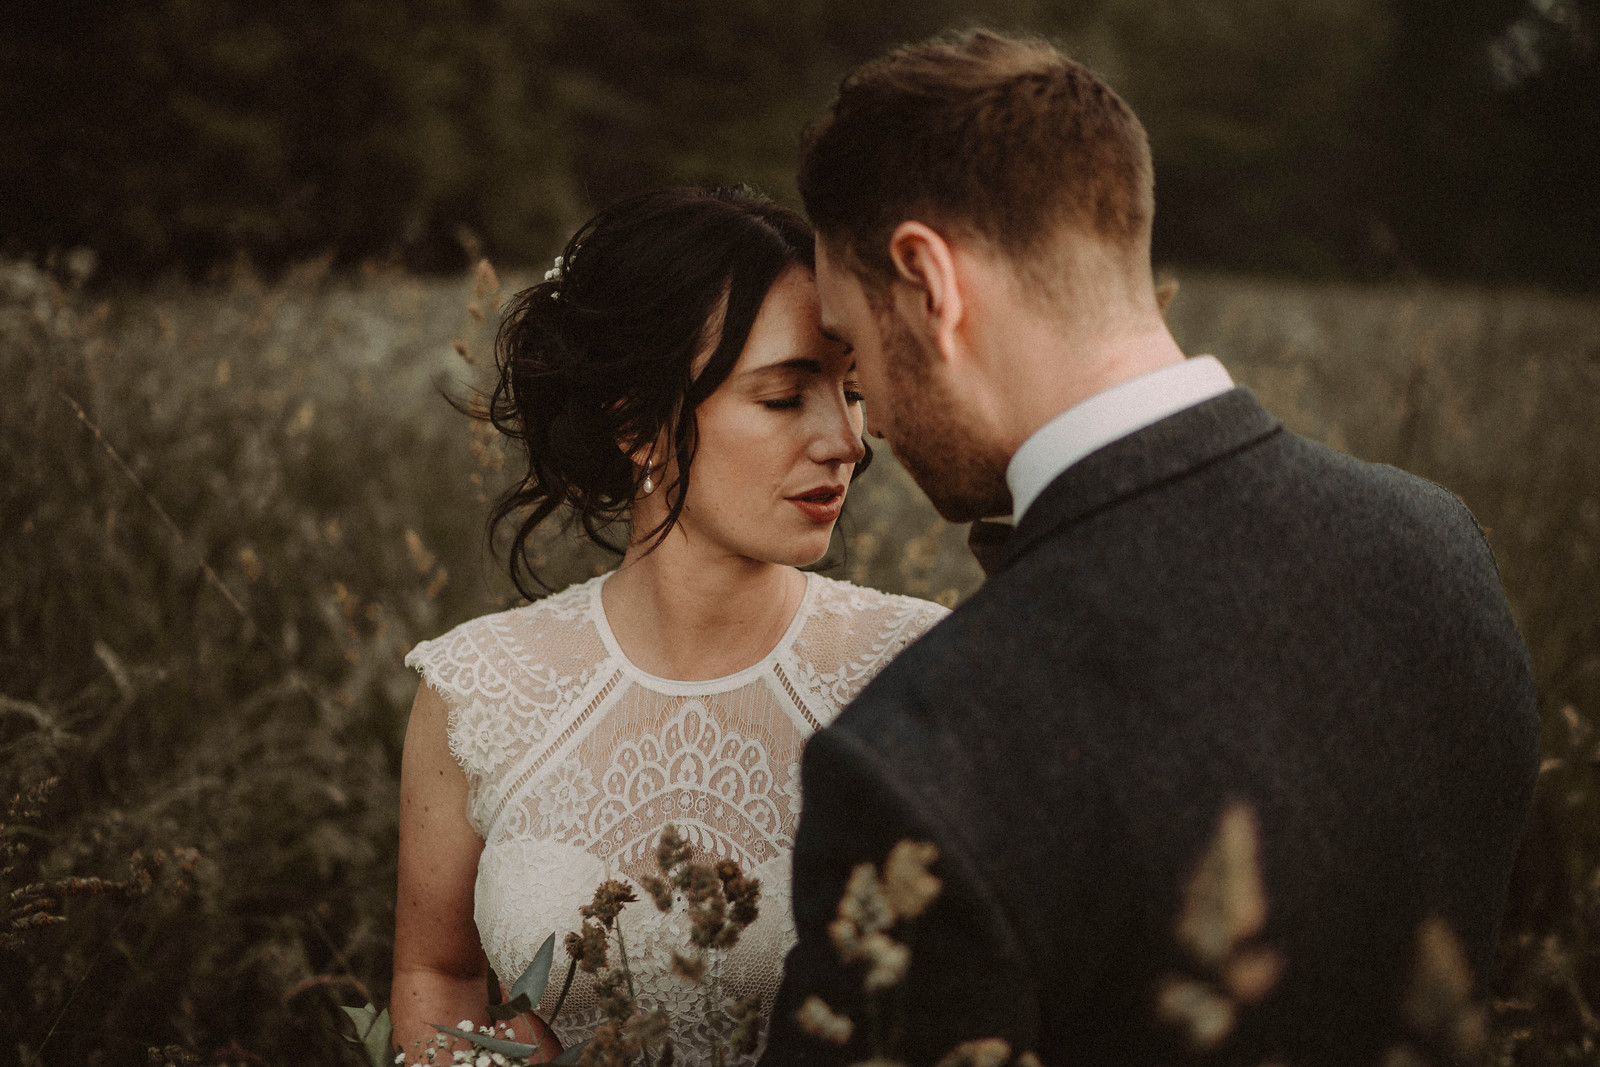 Bride and groom connect in the beauty of the countryside